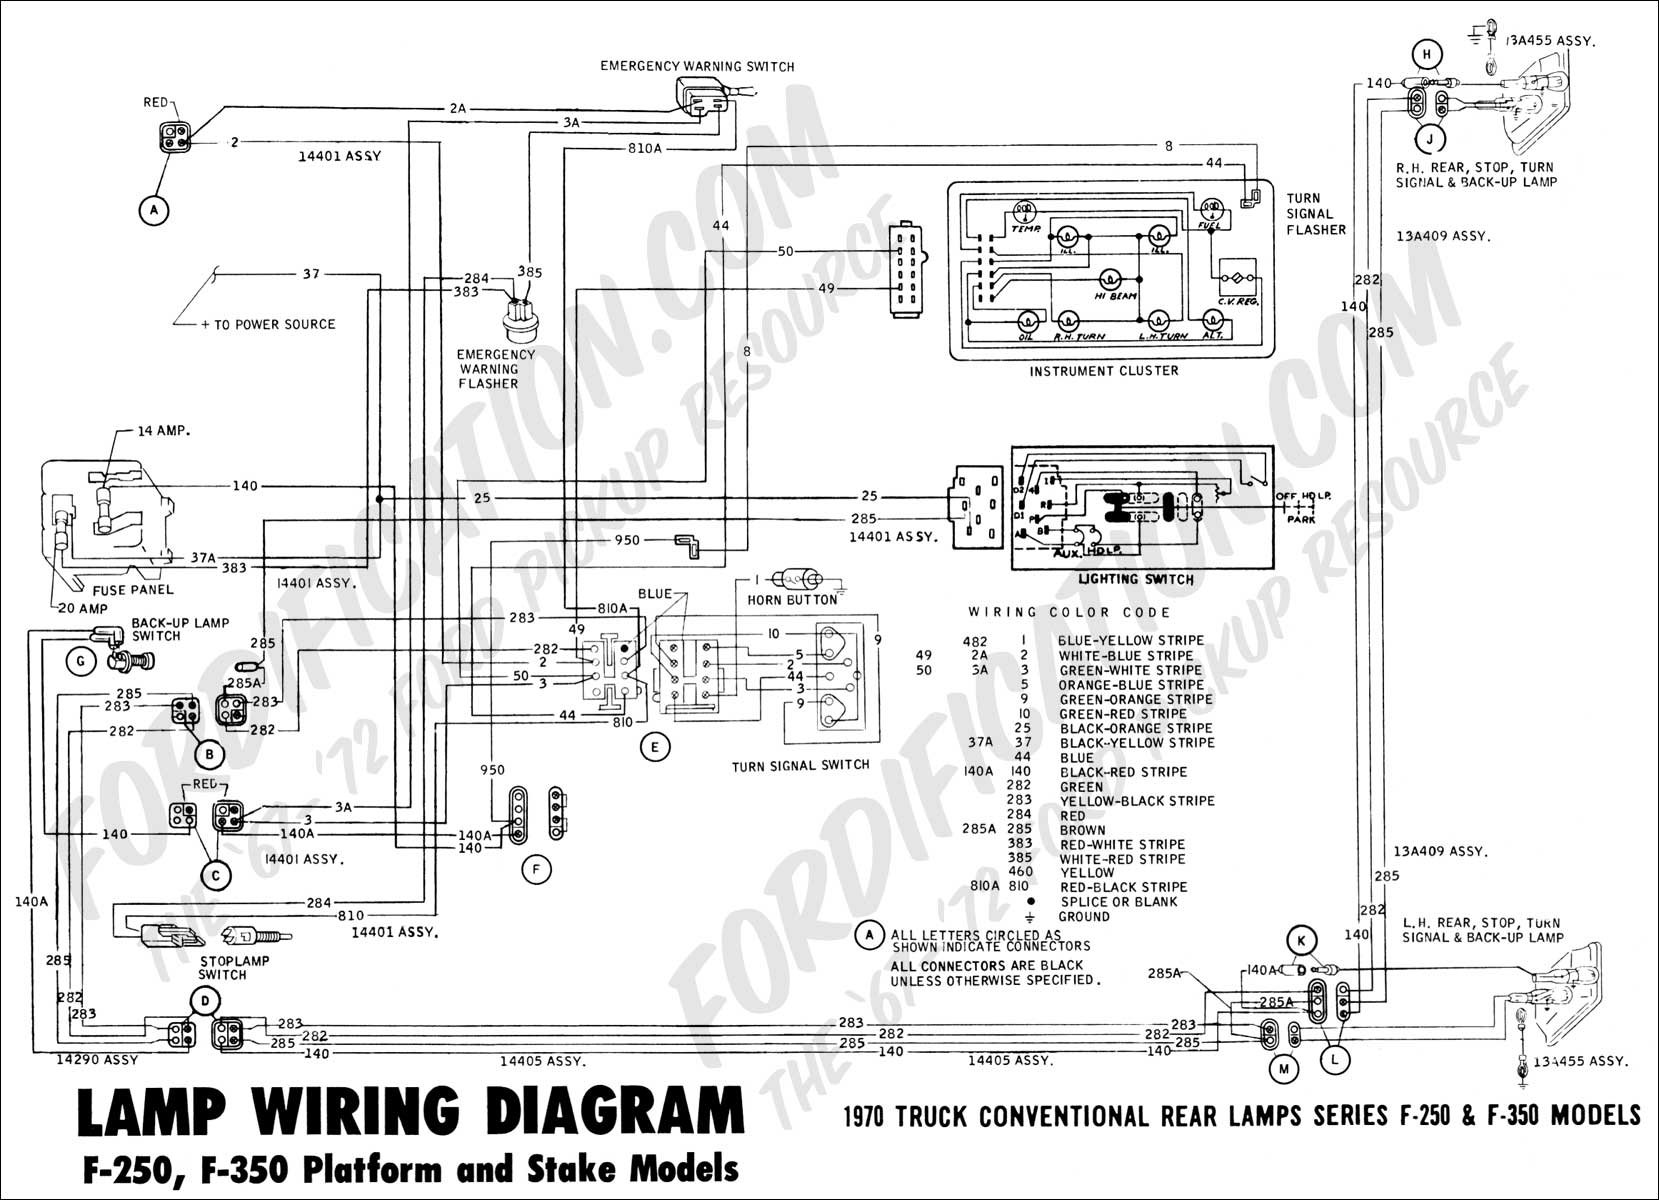 F150 Brake Light Wiring Diagram 1997 Ford Tail 71 Diagram71